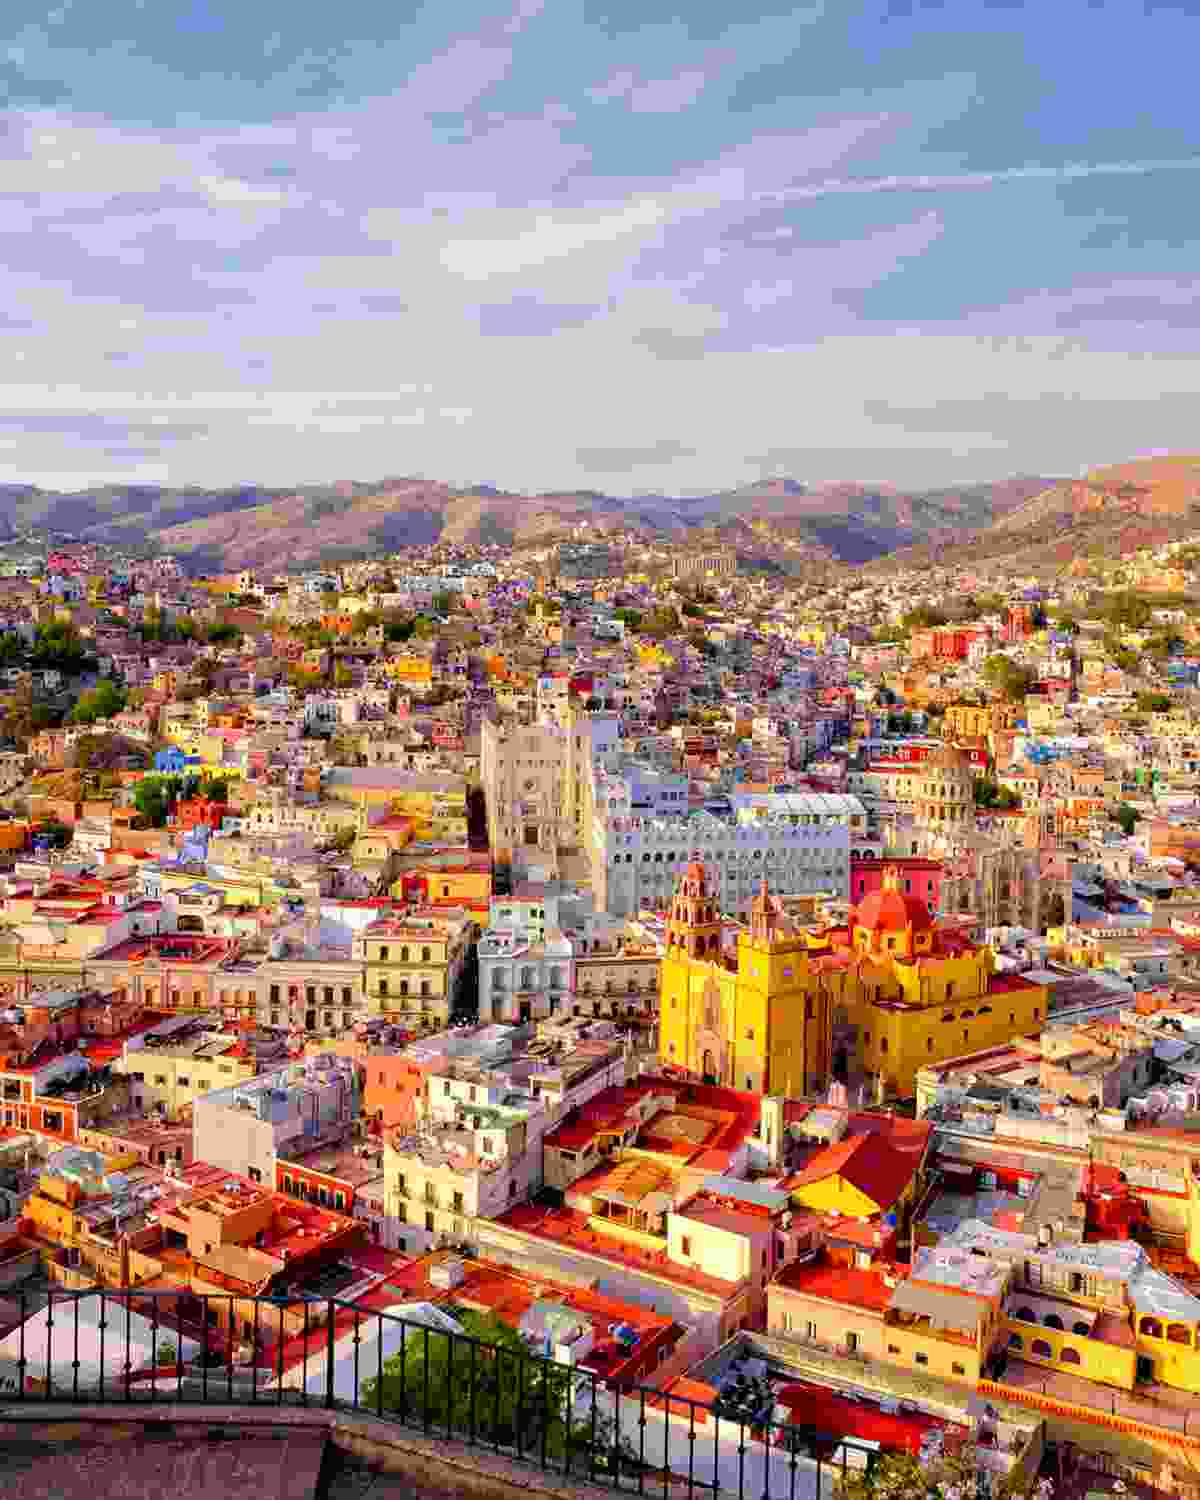 Paul's newest book sees him road trip through Mexico (Shutterstock)